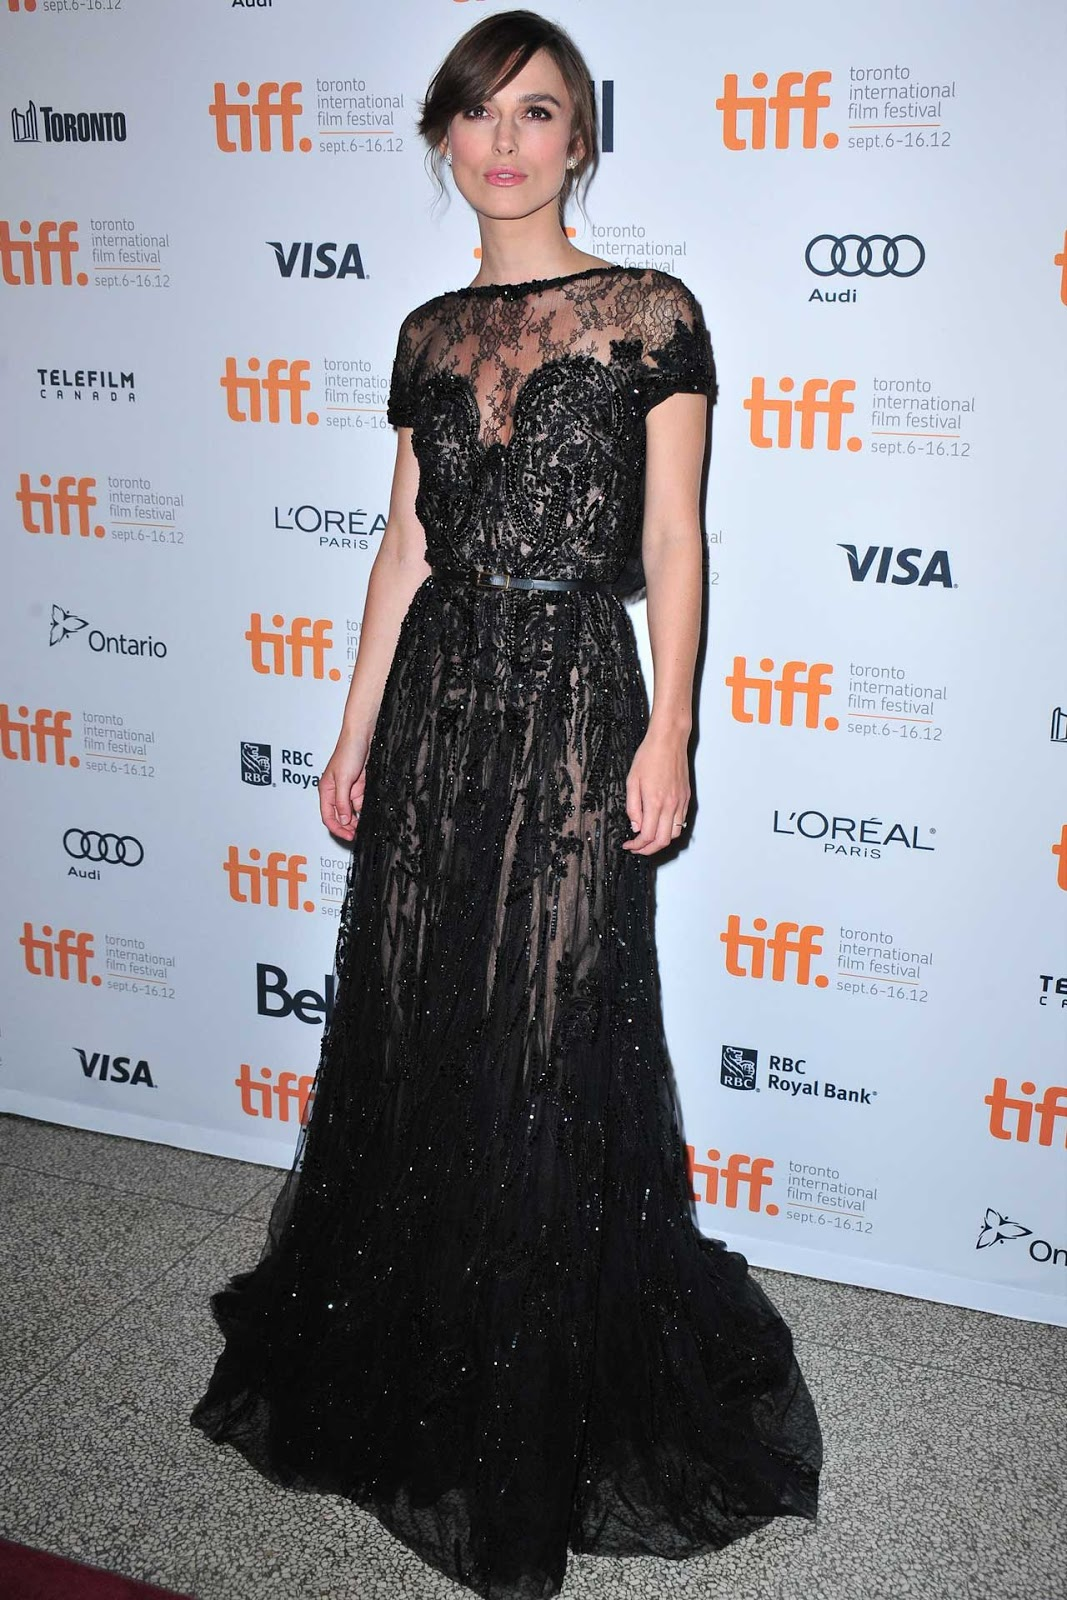 Keira Knightley at the TIFF in Elie Saab